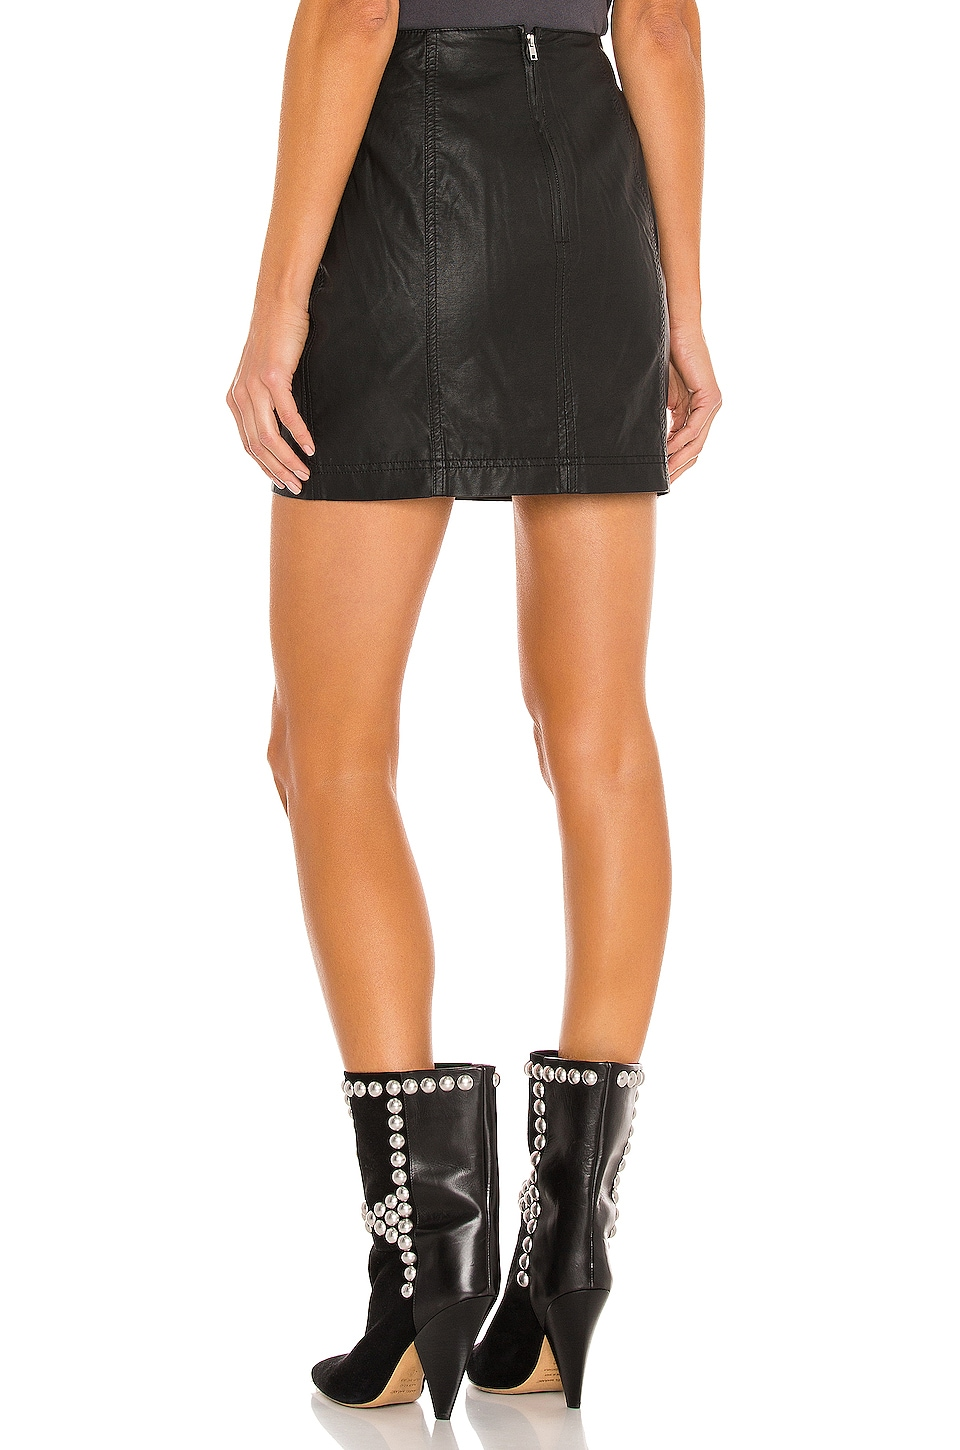 Modern Femme Vegan Mini Skirt, view 3, click to view large image.